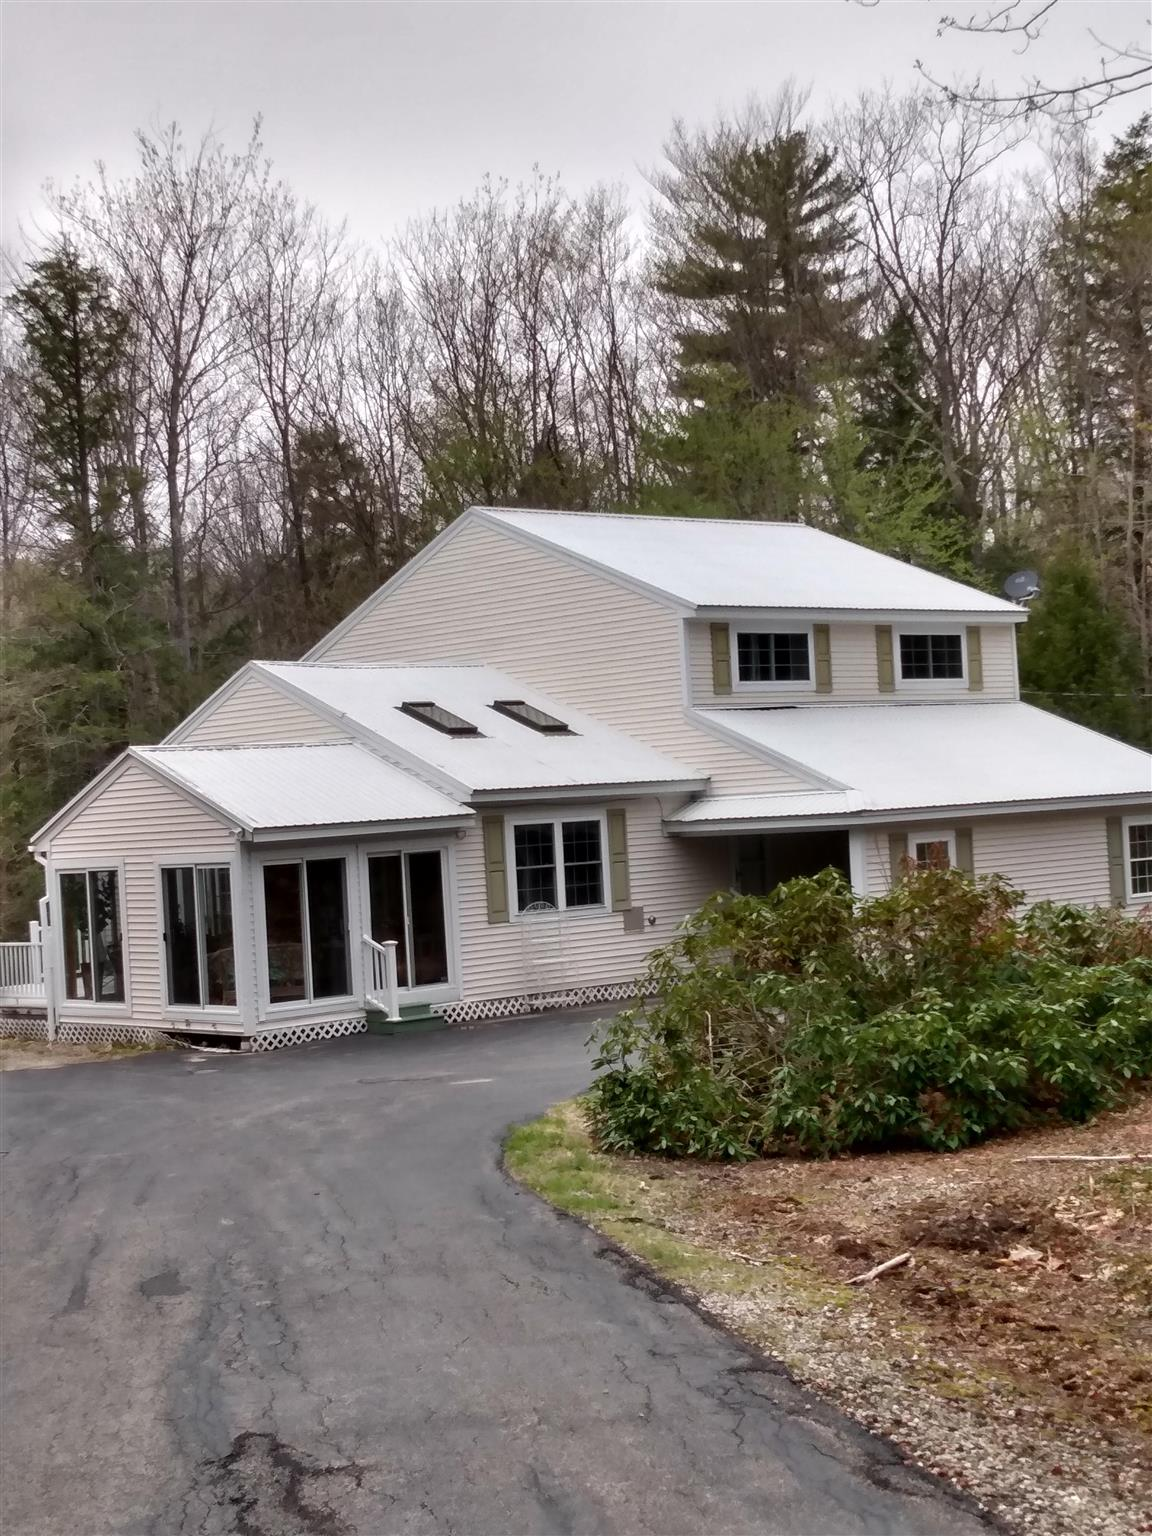 OSSIPEE NHHomes for sale